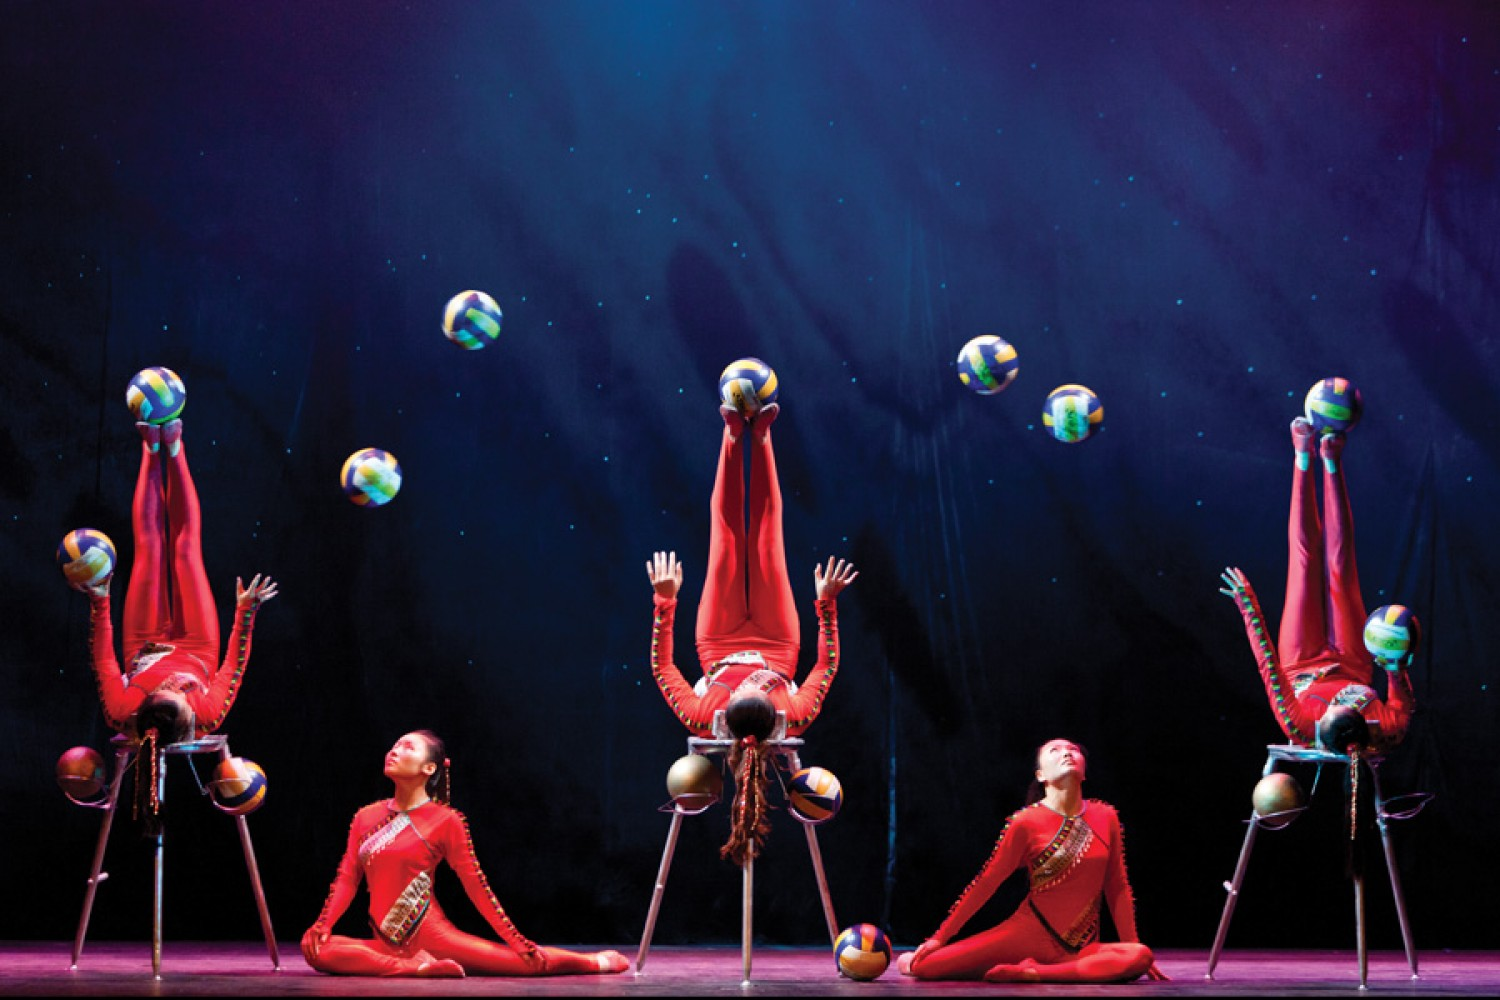 Golden dragon acrobats show length x nebule with steroids